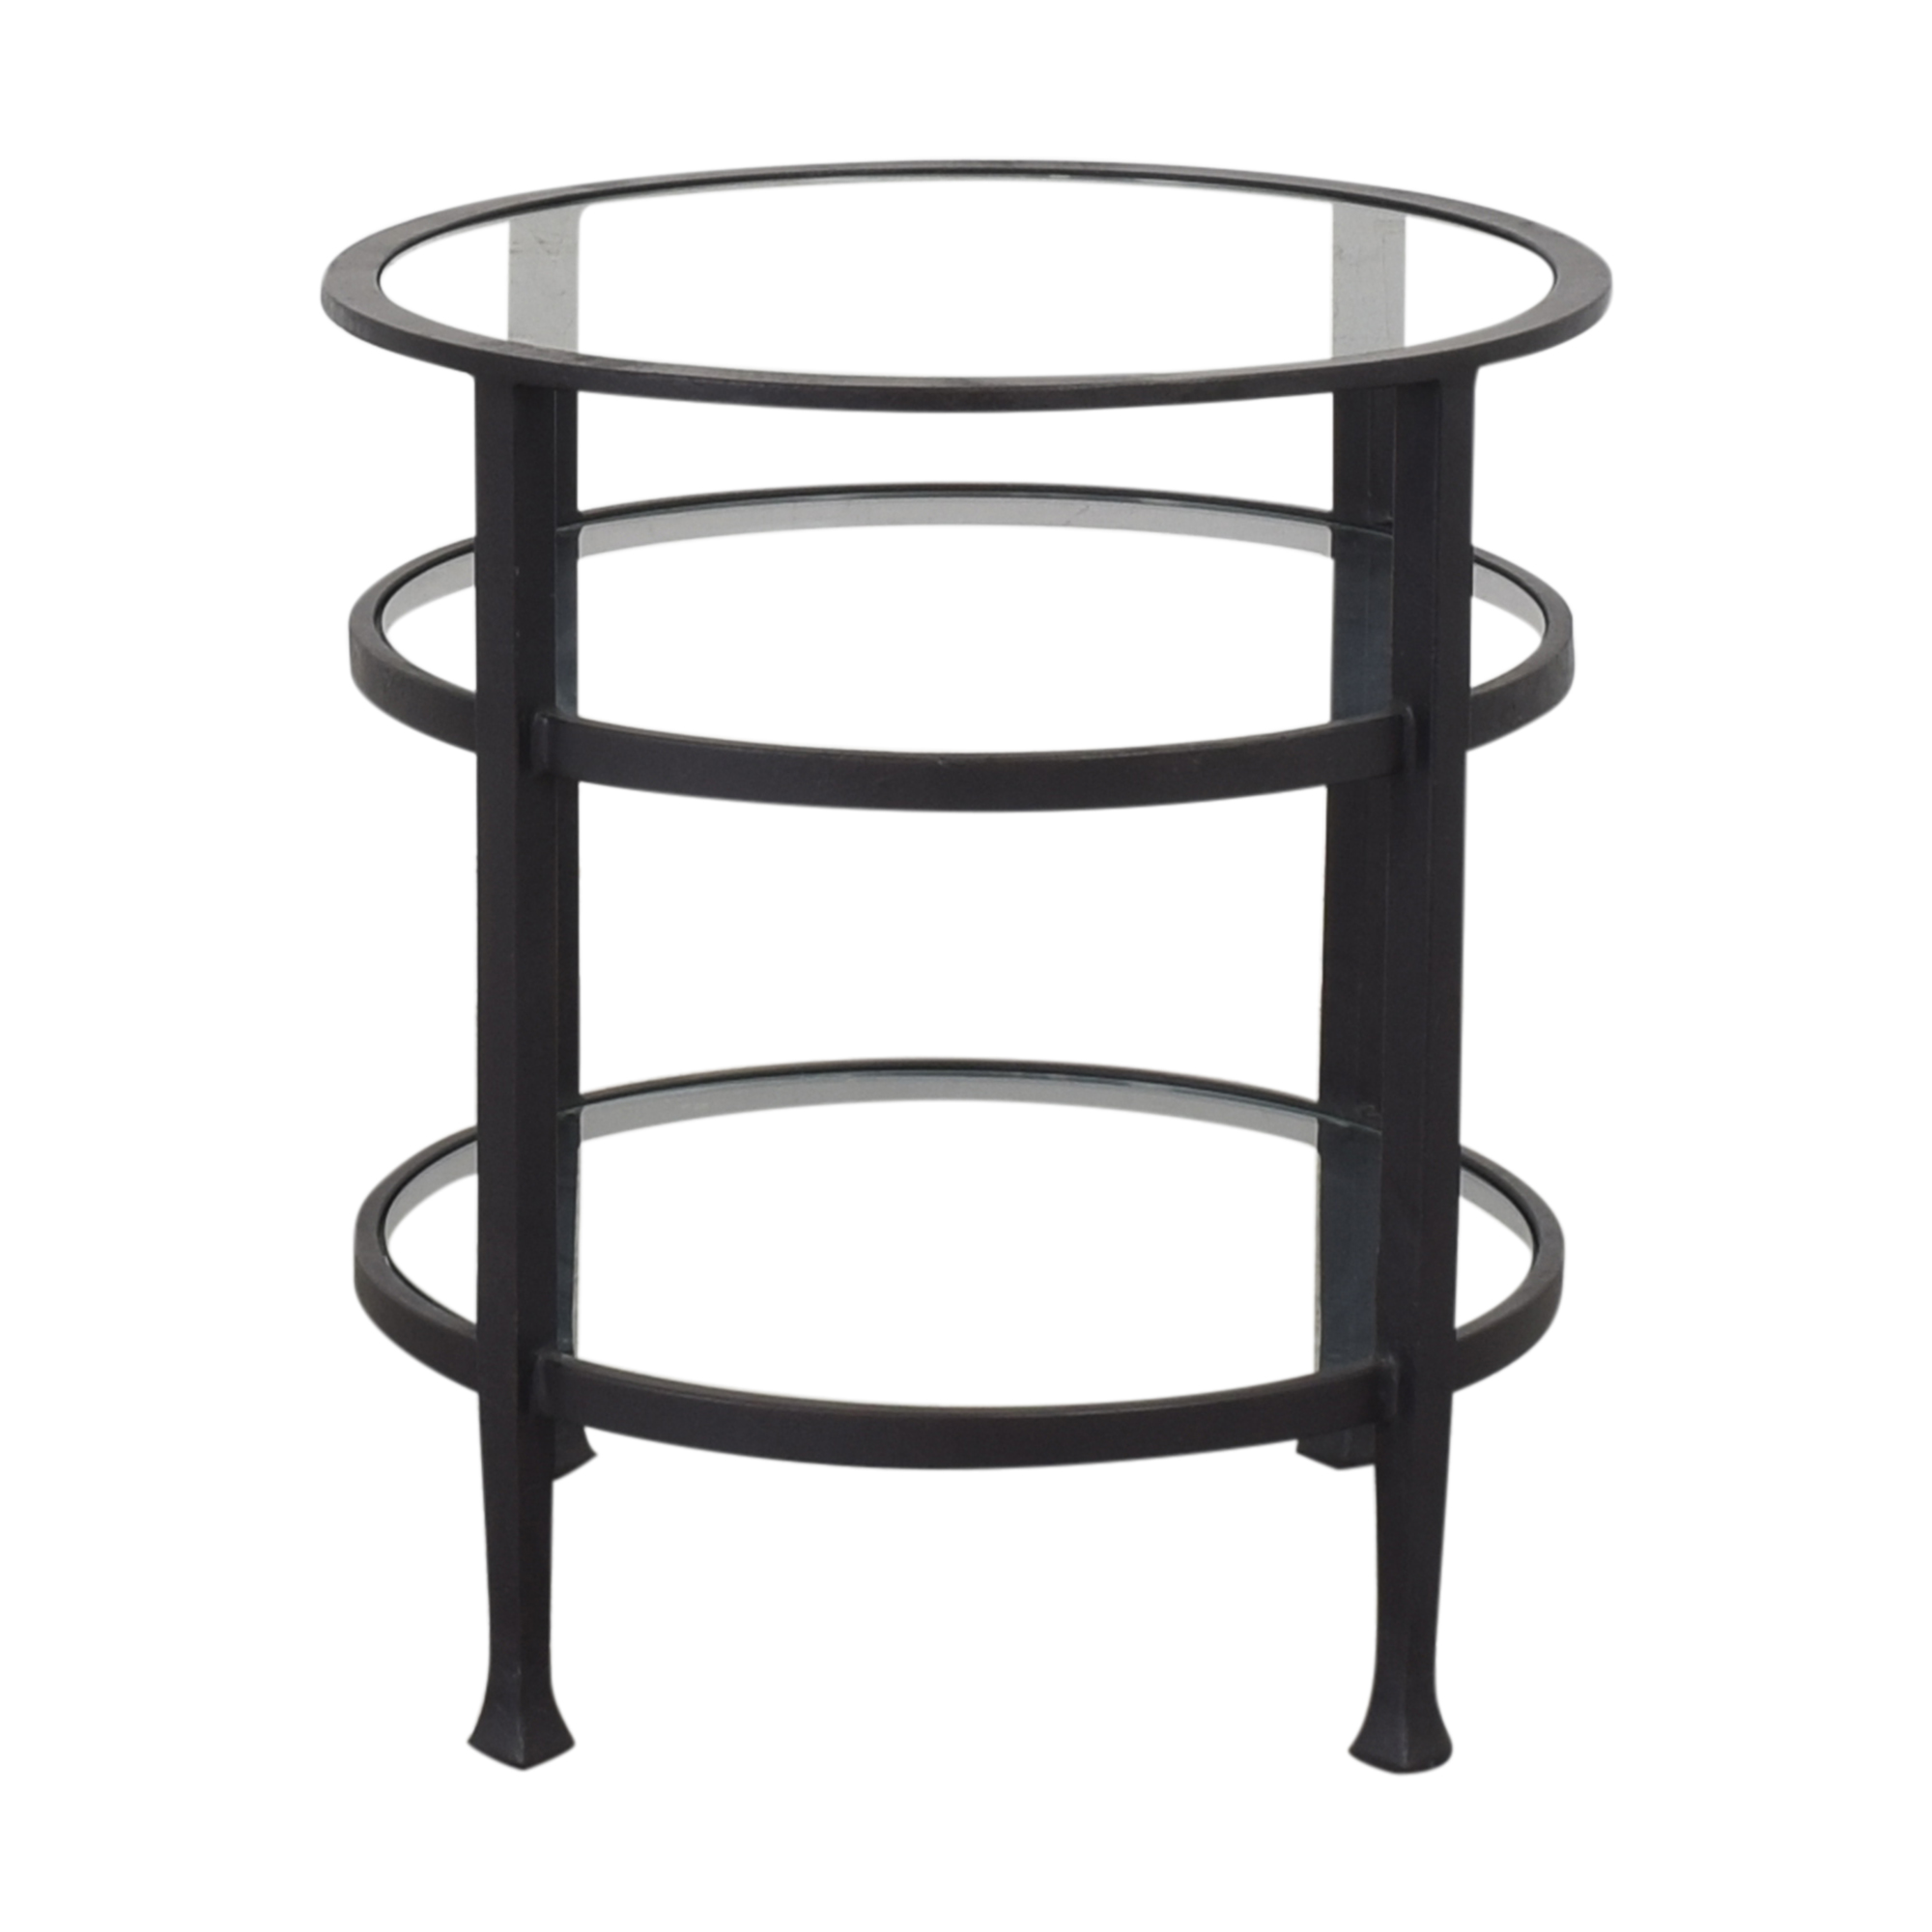 Restoration Hardware Round End Table / End Tables